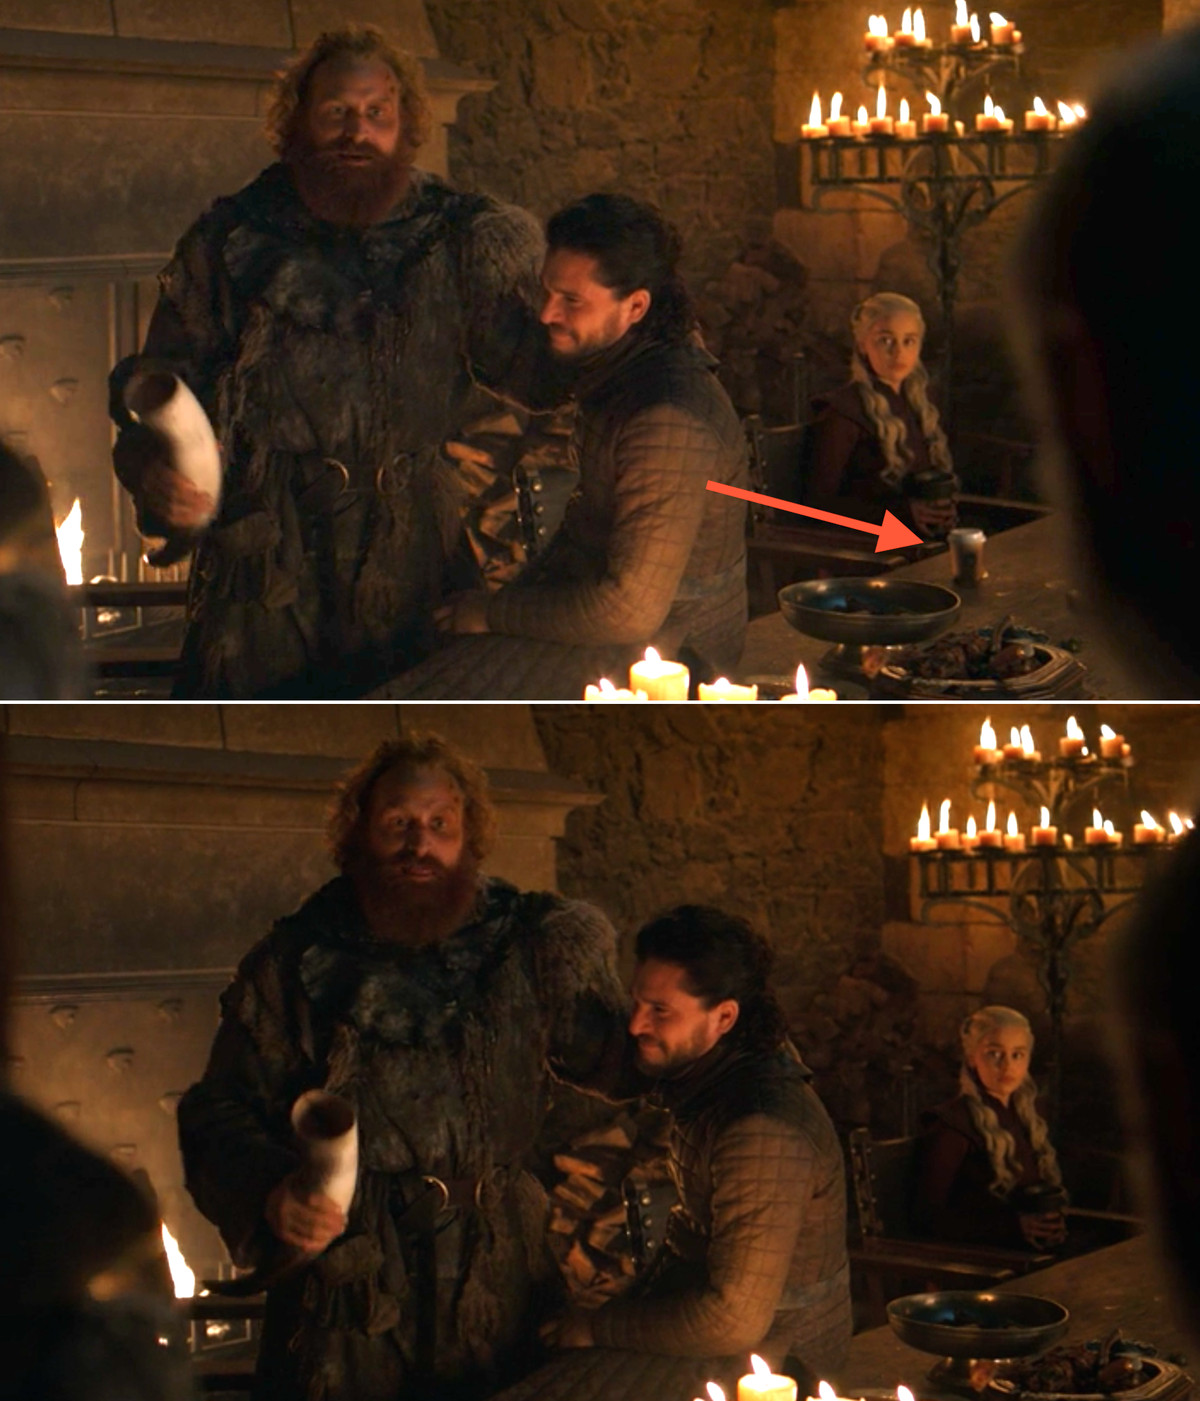 coffee cup in game of thrones removed